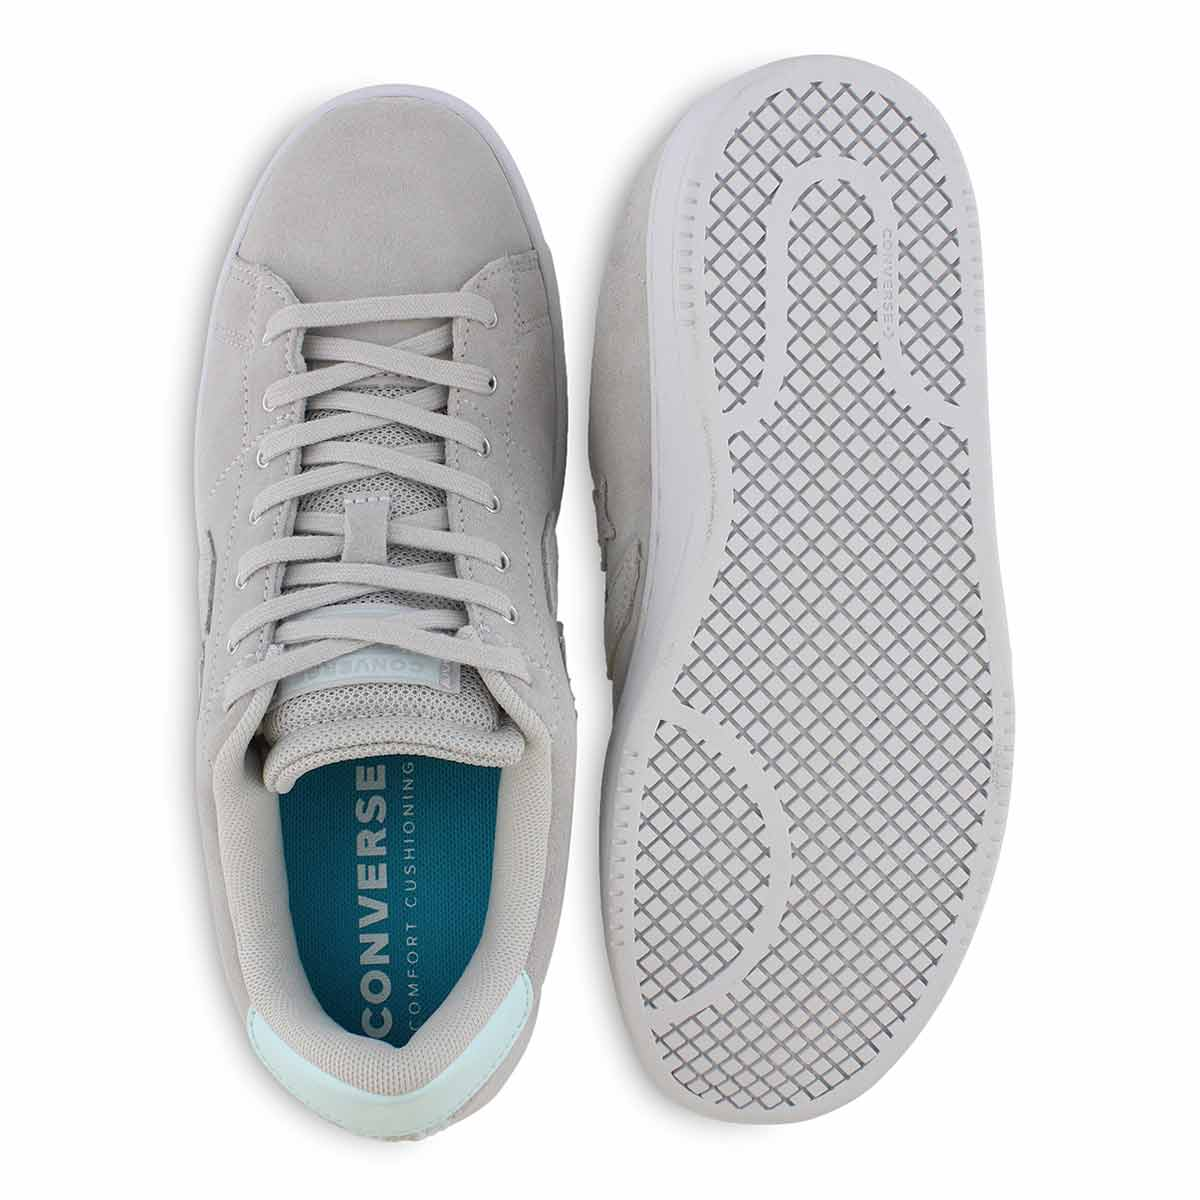 Lds All Court Cloudy Court mse/teal snkr